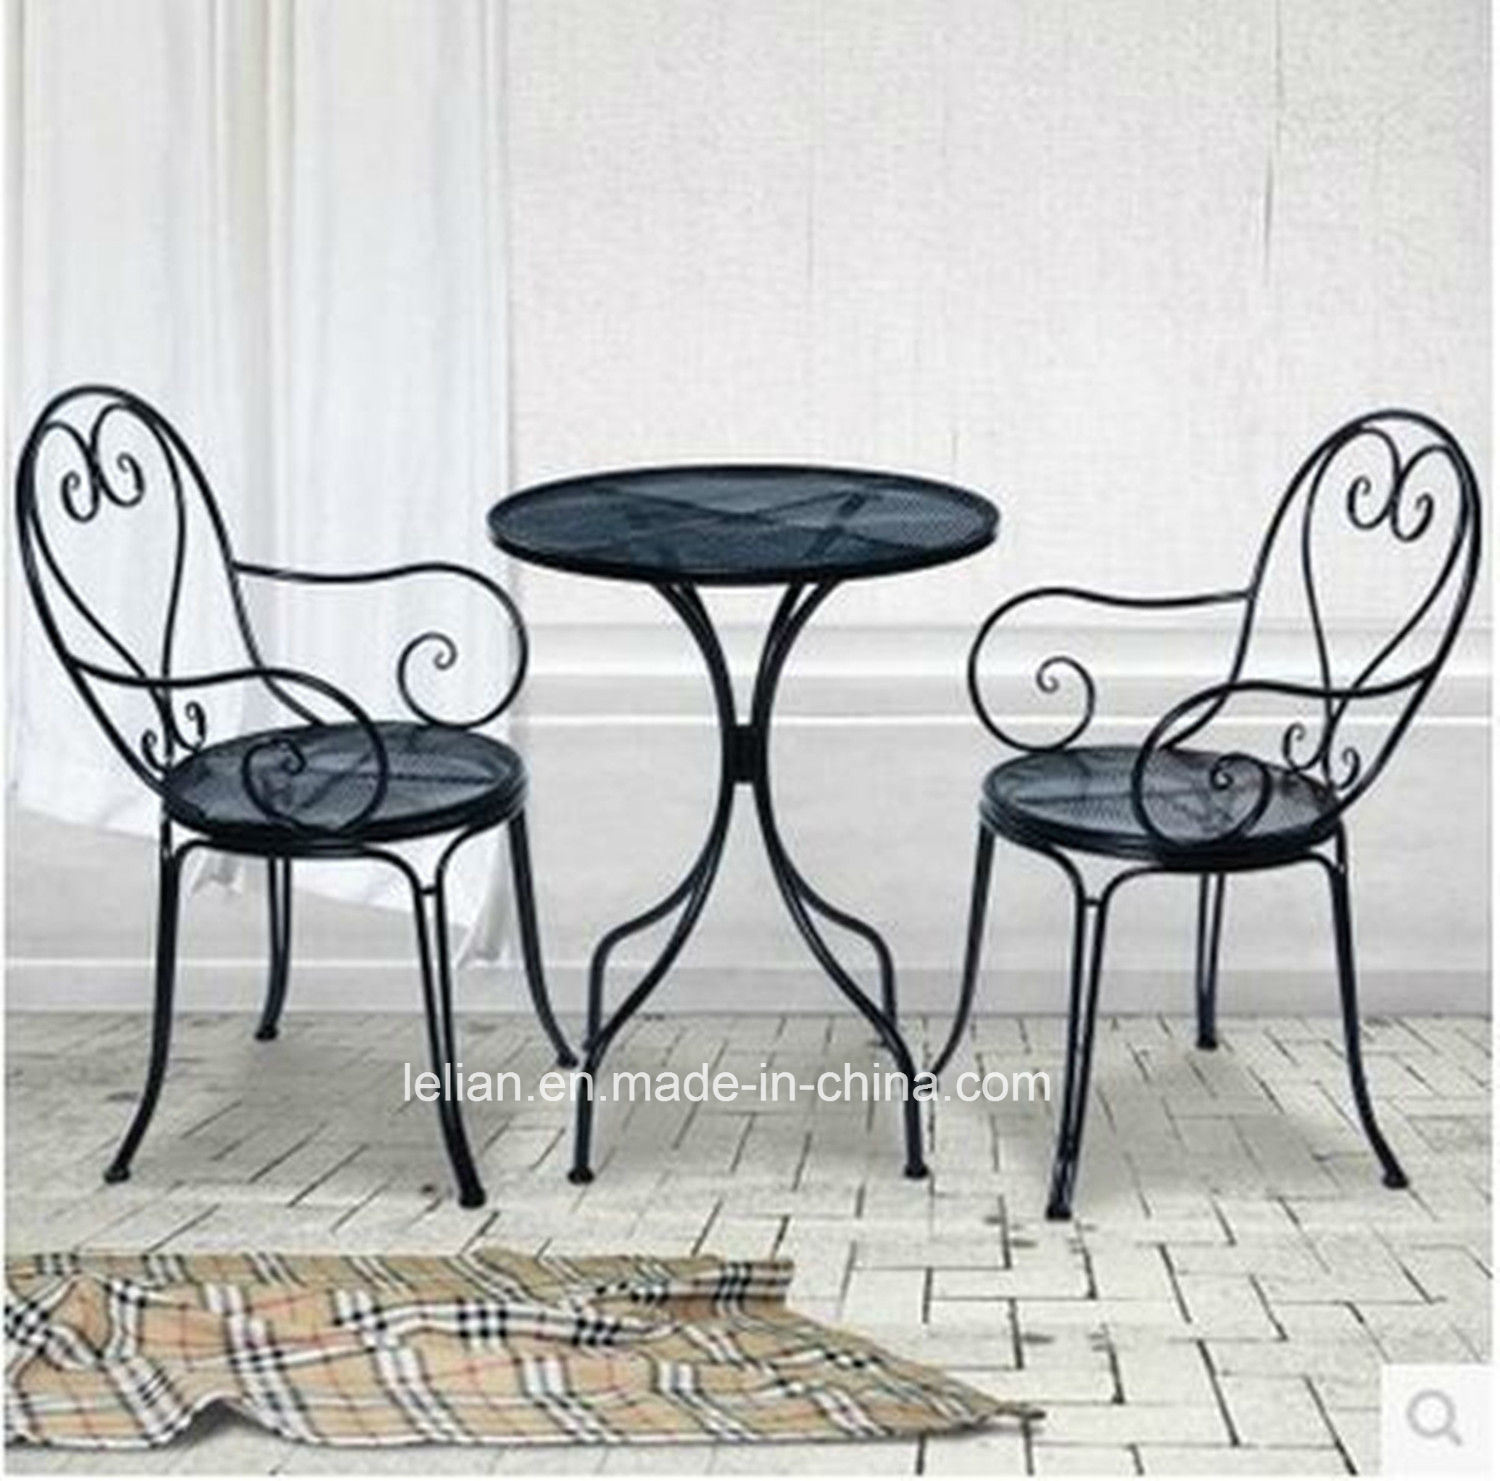 Outdoor Table And Chair Set Hot Item Outdoor Garden Furniture Iron Table And Chair Set Ll Wst002